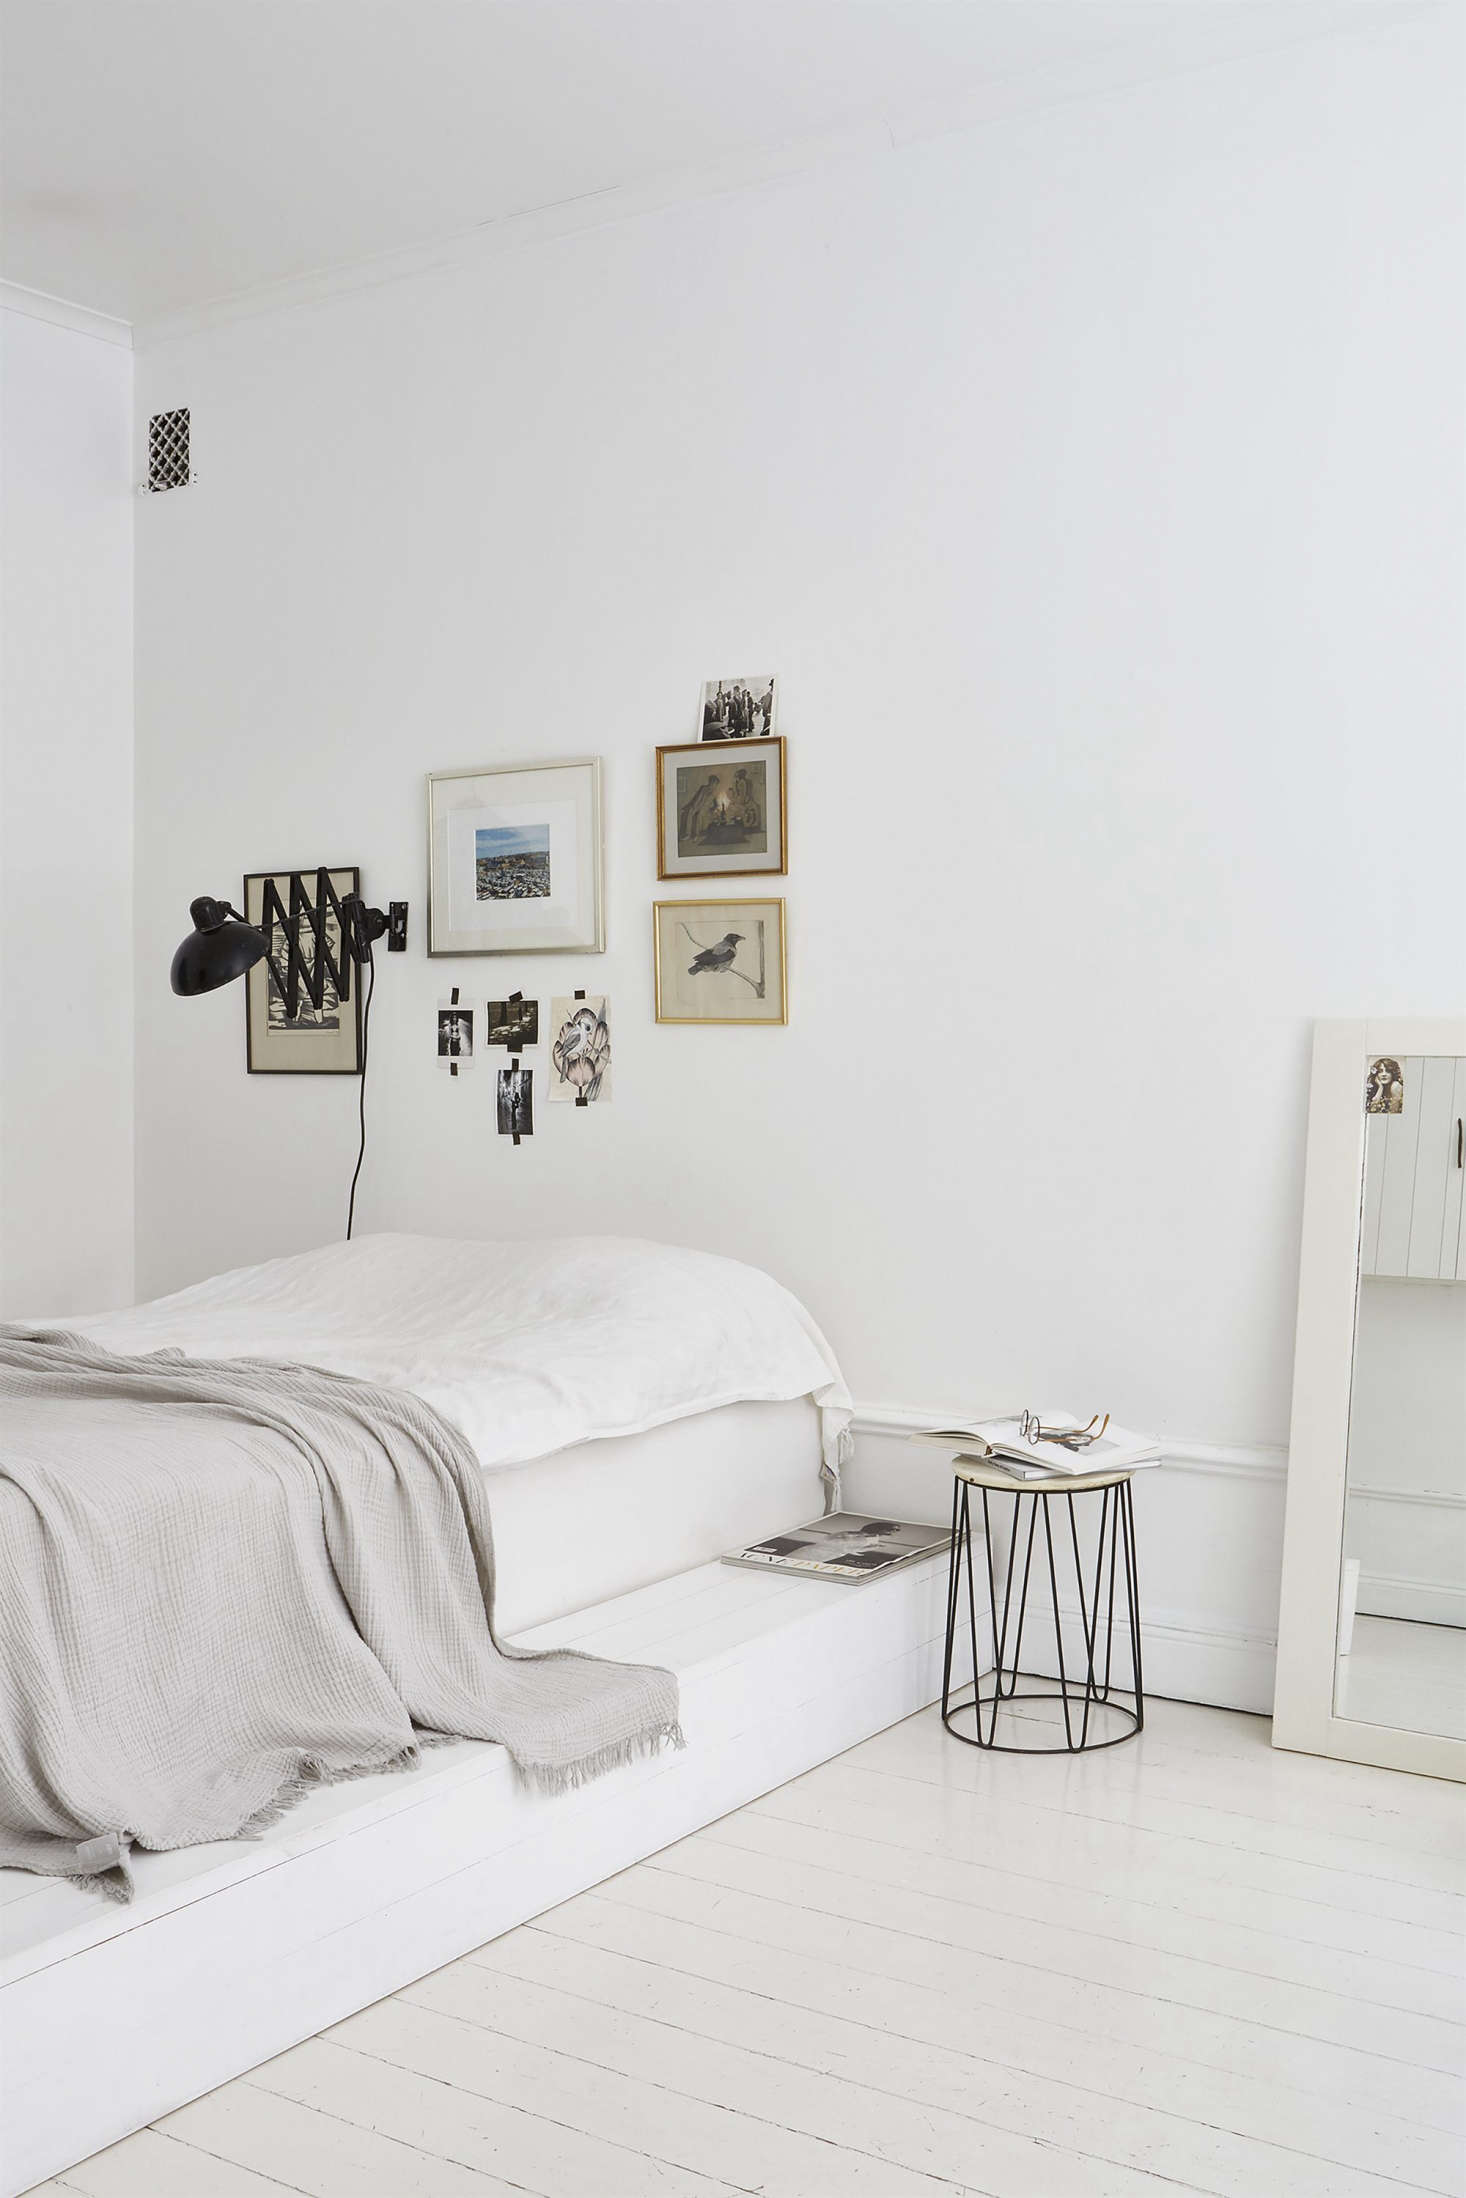 A white platform bed and inventive art arrangement at home in a Fantastic Frank apartment in Sweden styled by Josenfin Haag. Photograph by Emily Laye, courtesy of JH.